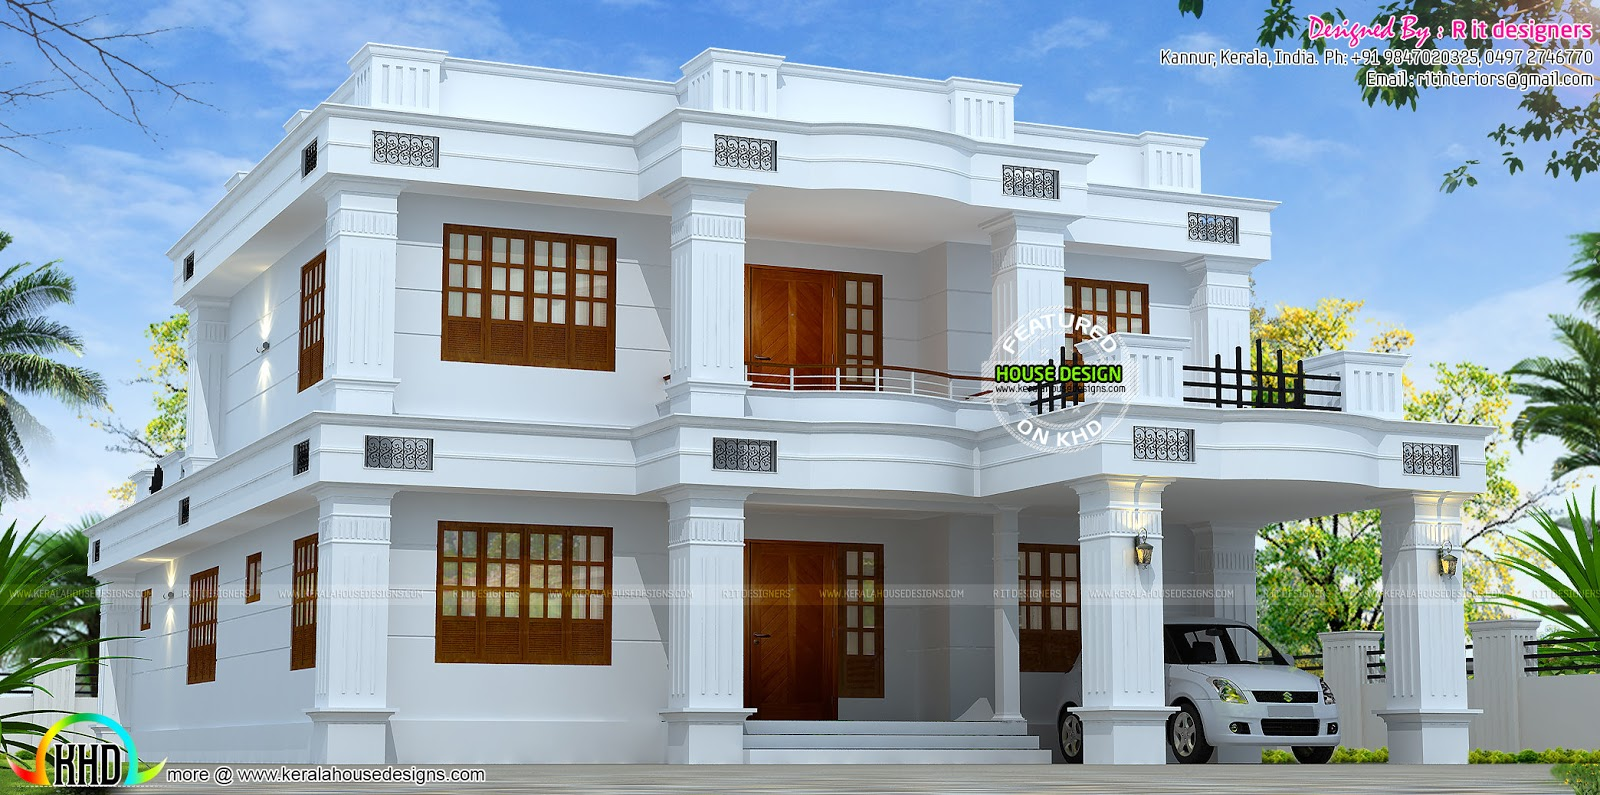 February 2016 kerala home design and floor plans How to design a house